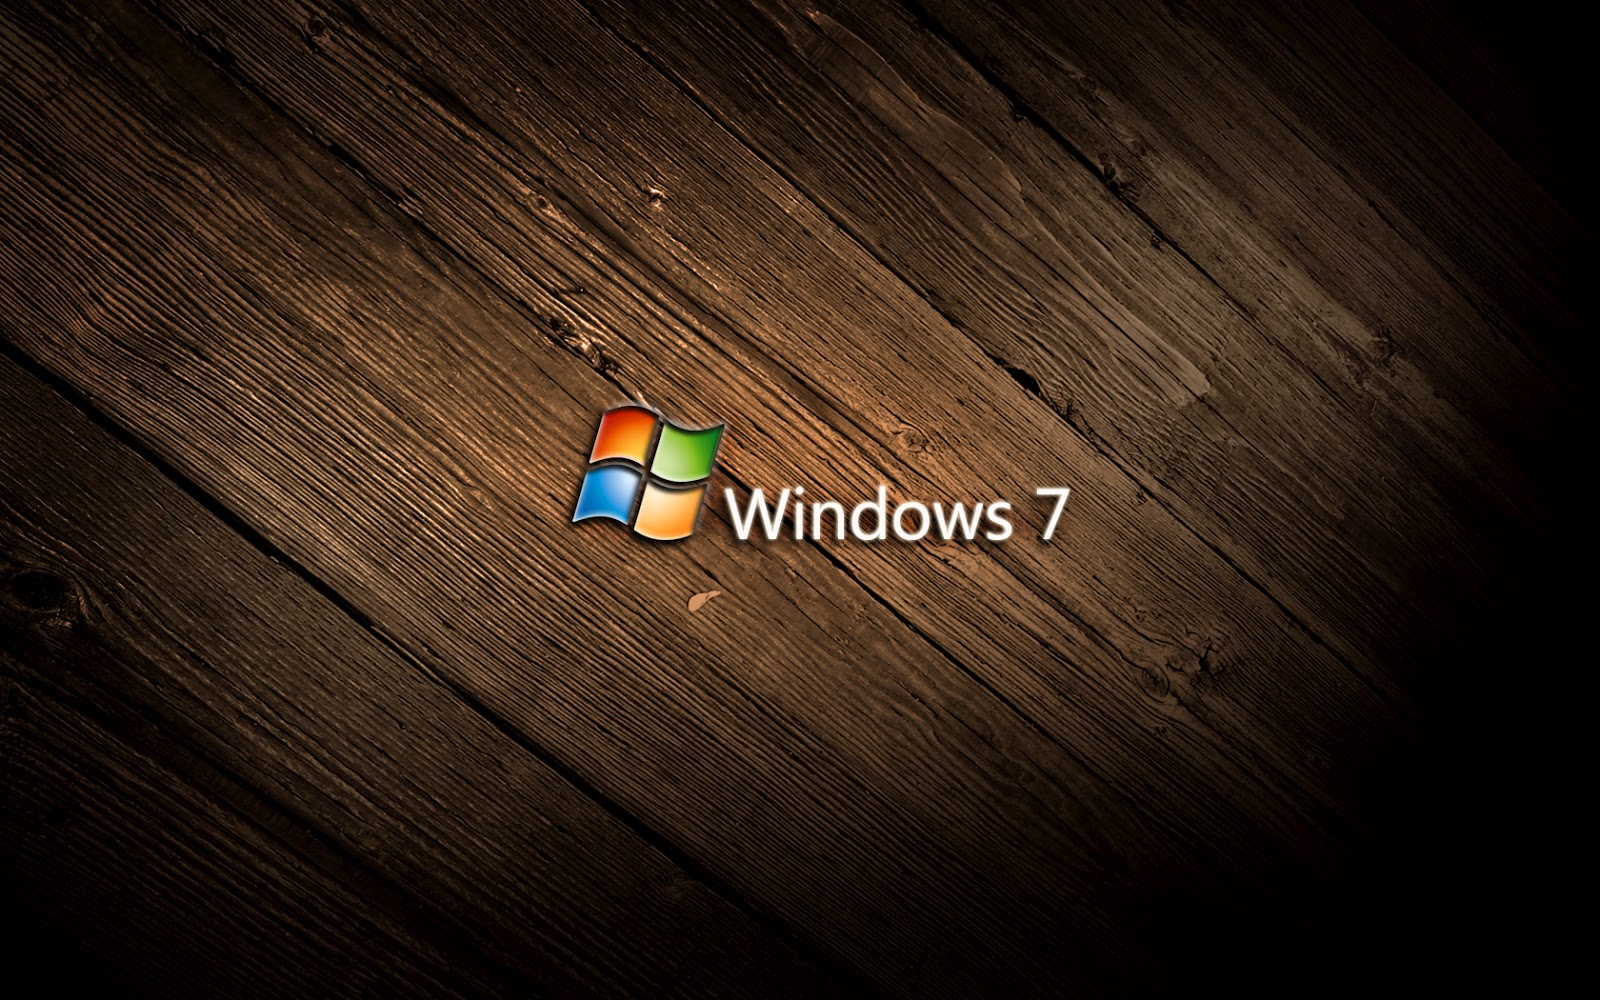 Windows 7 HD Wallpapers - a   HD Wallpapers